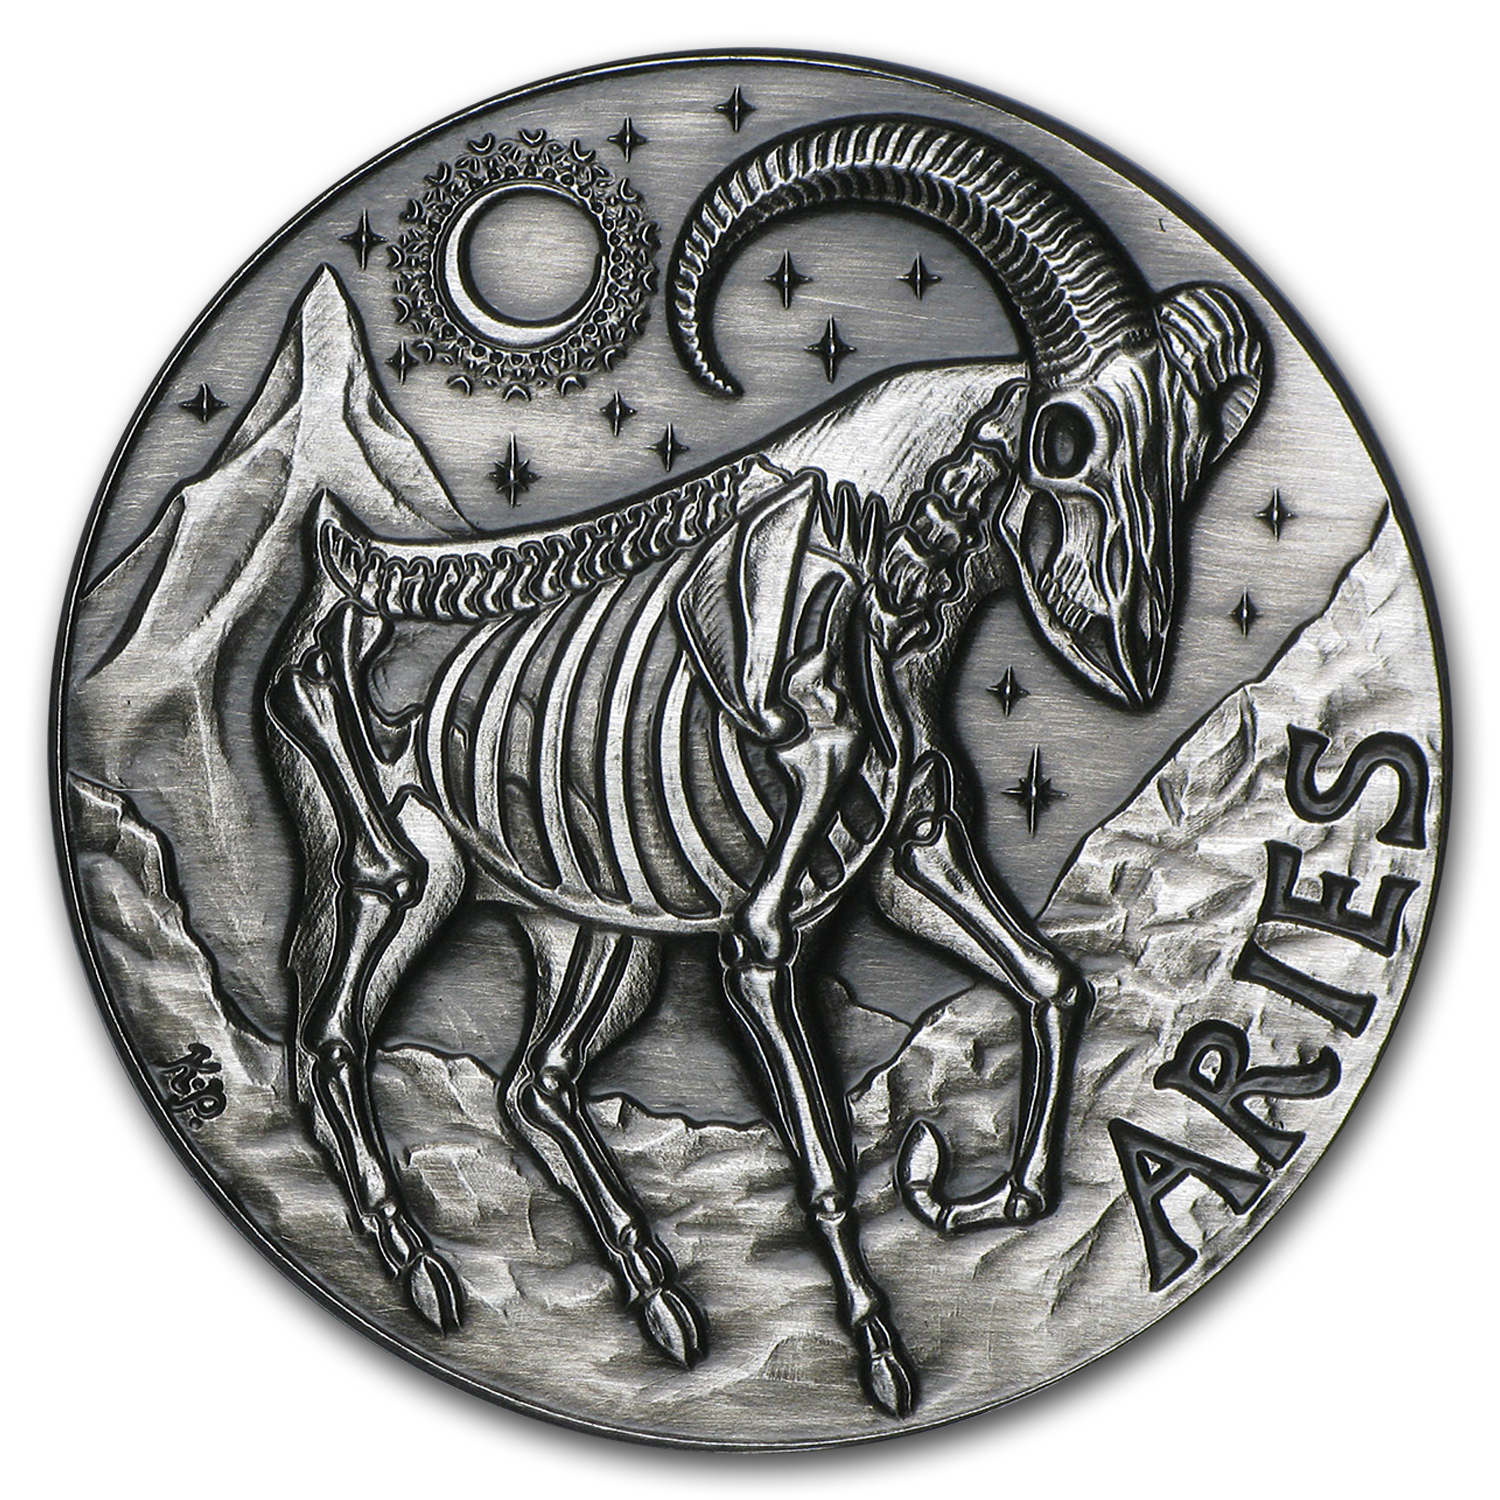 1 oz Silver Antique Round - Zodiac Skull Series (Aries)